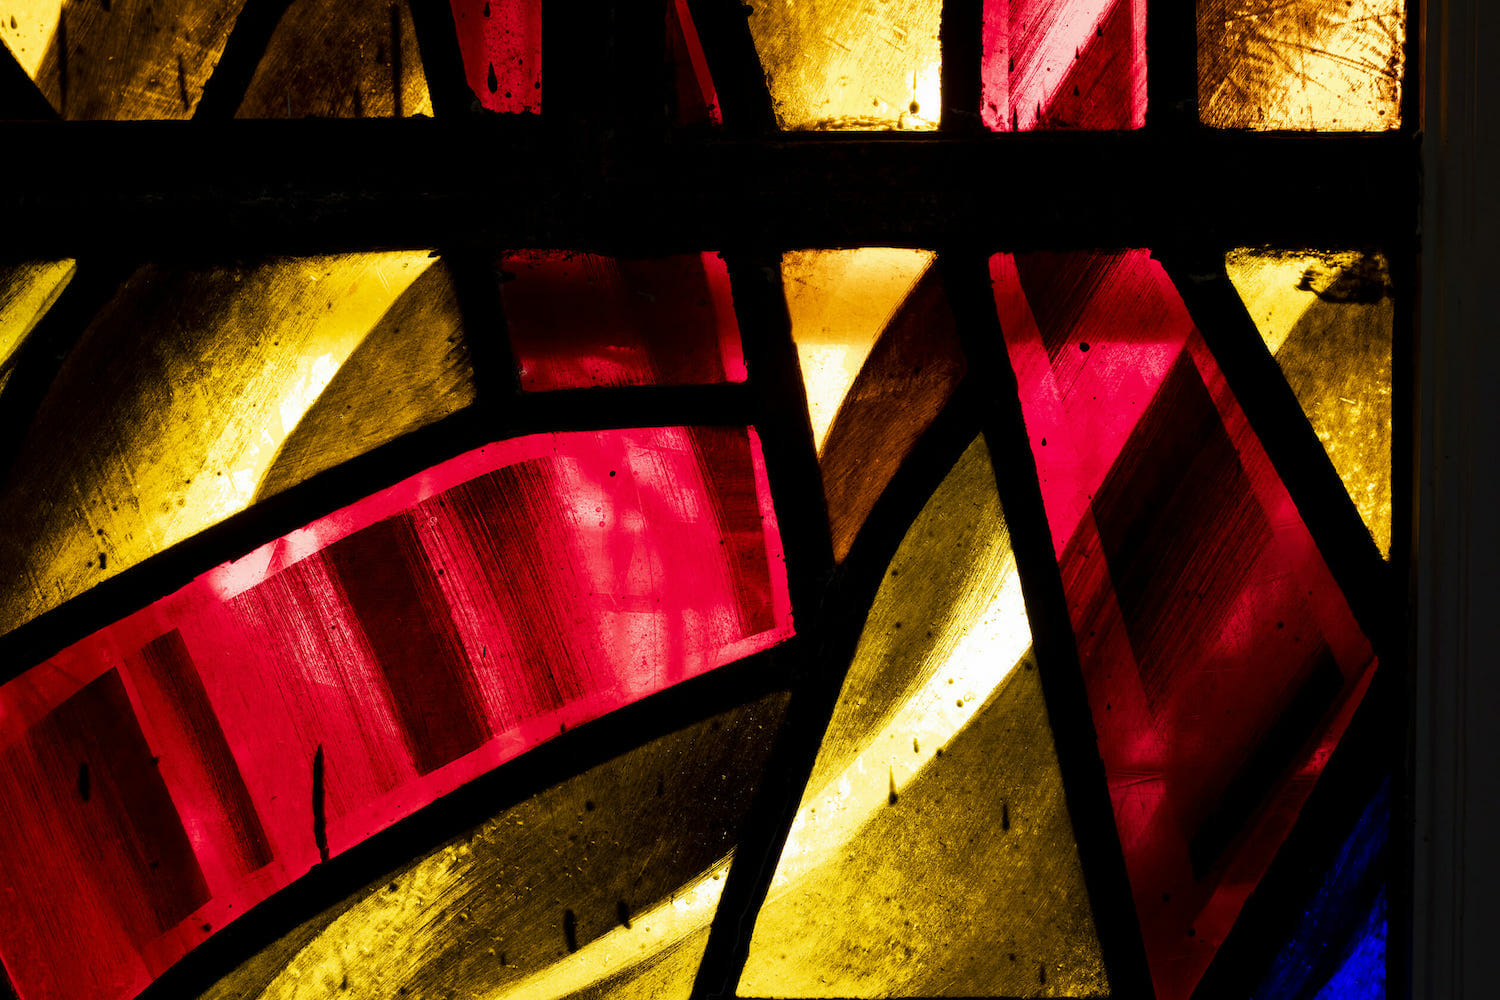 yellow, red and black stained glass